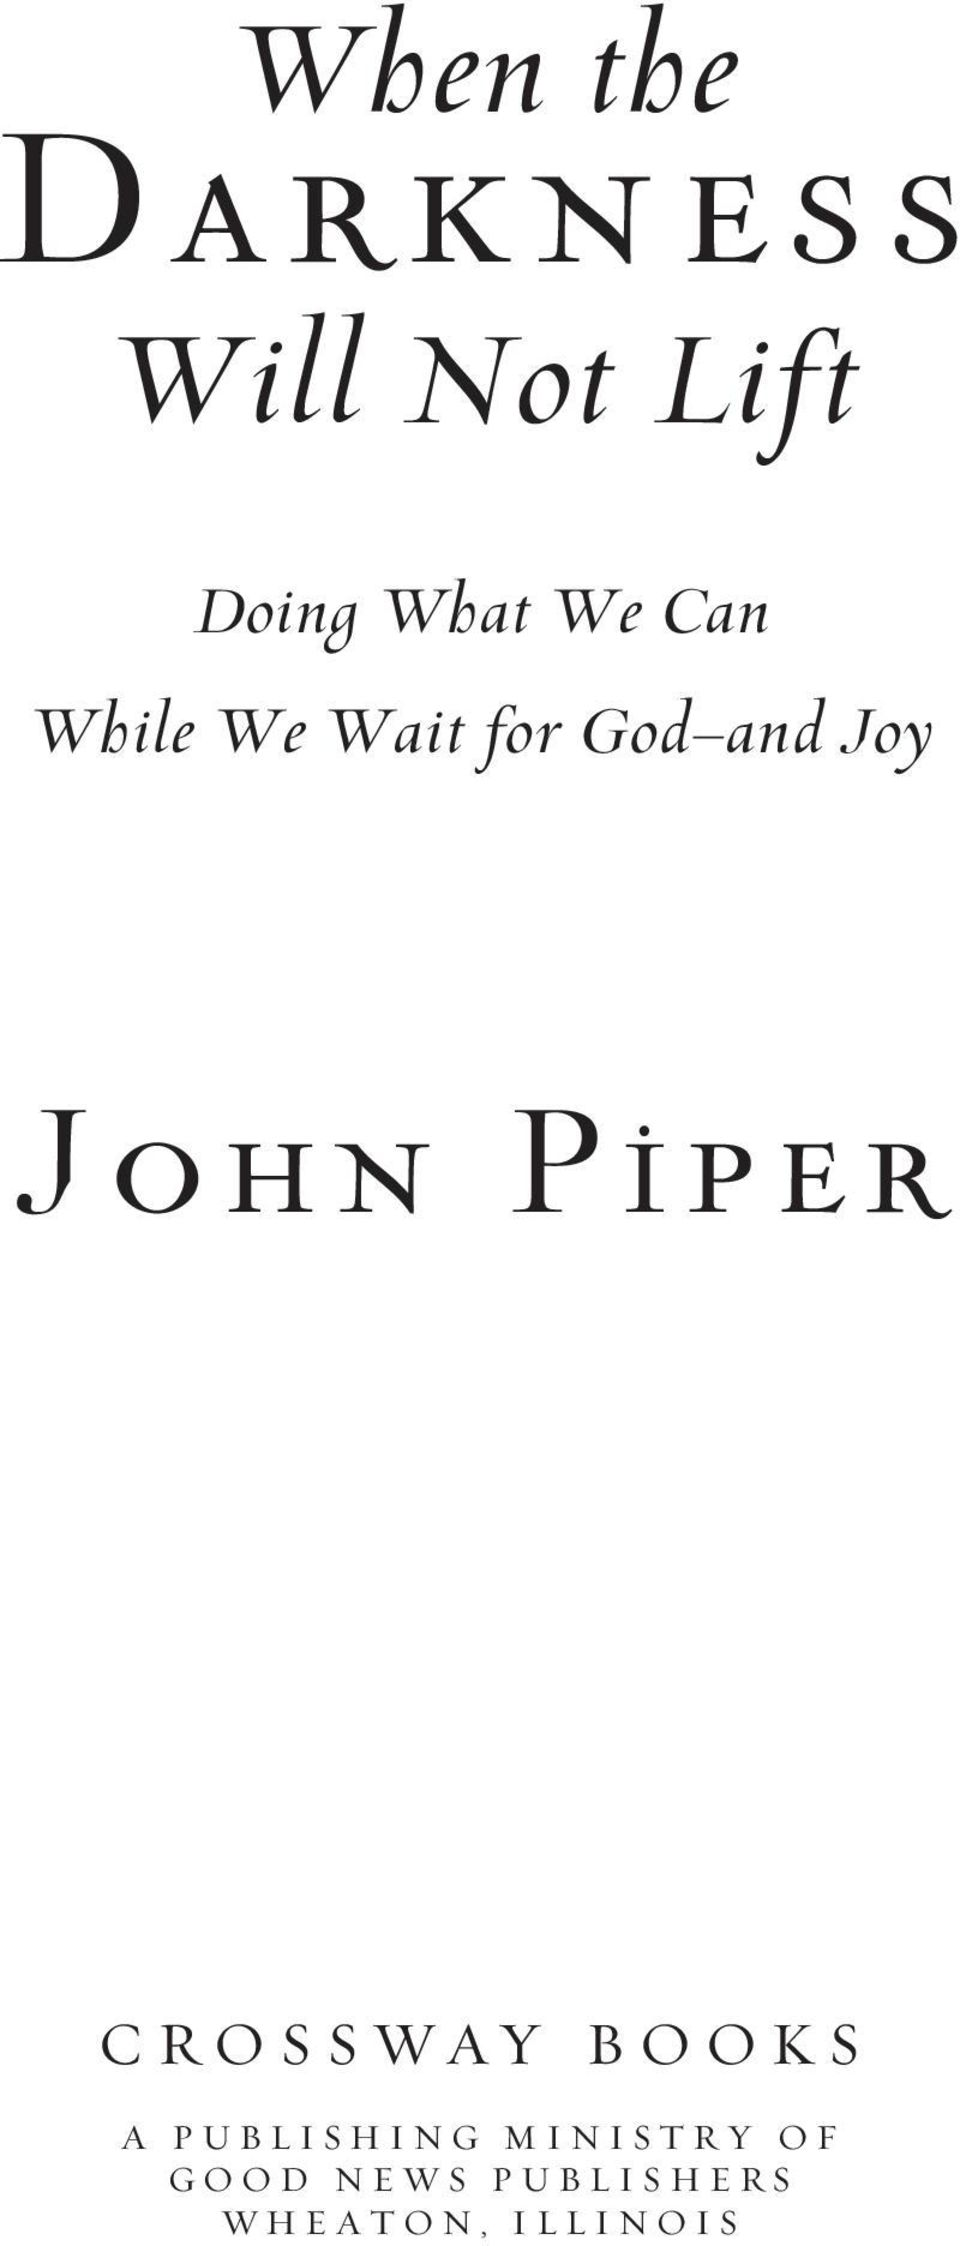 Piper CROSSWAY BOOKS A PUBLISHING MINISTRY